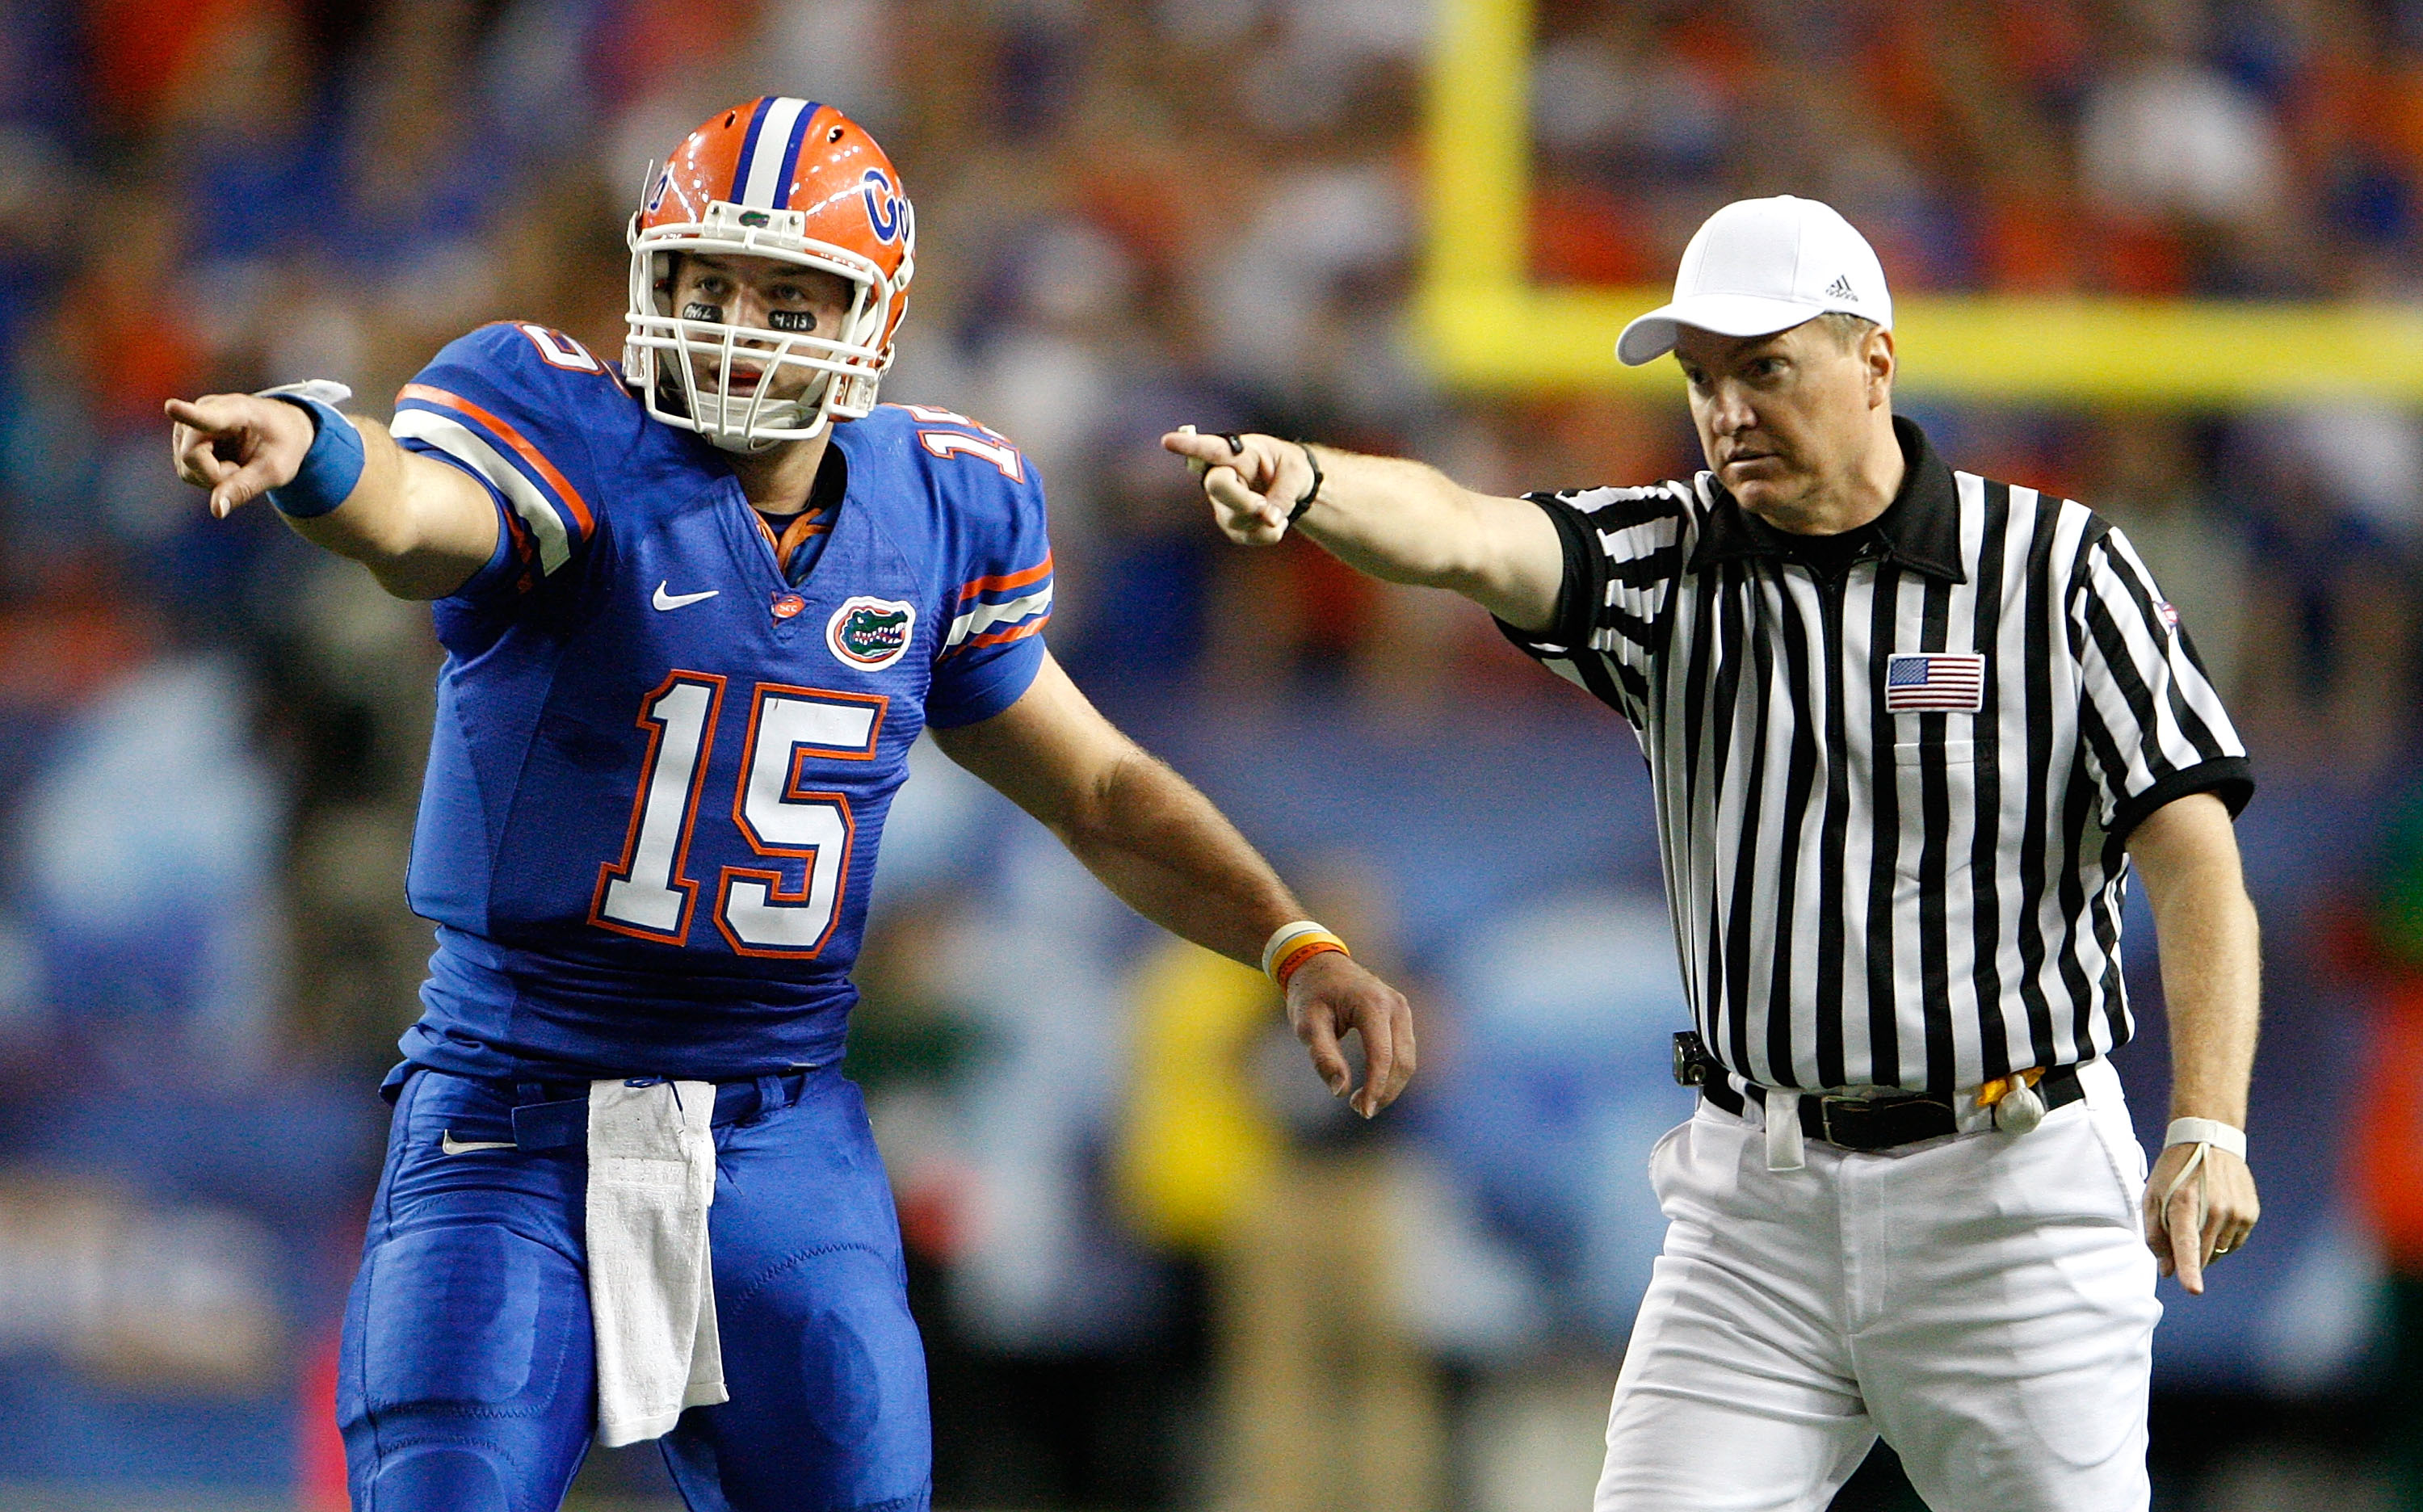 ATLANTA - DECEMBER 06:  Quarterback Tim Tebow #15 of the Florida Gators points with referee Tom Ritter at the first down against the Alabama Crimson Tide during the SEC Championship on December 6, 2008 at the Georgia Dome in Atlanta, Georgia.  (Photo by K